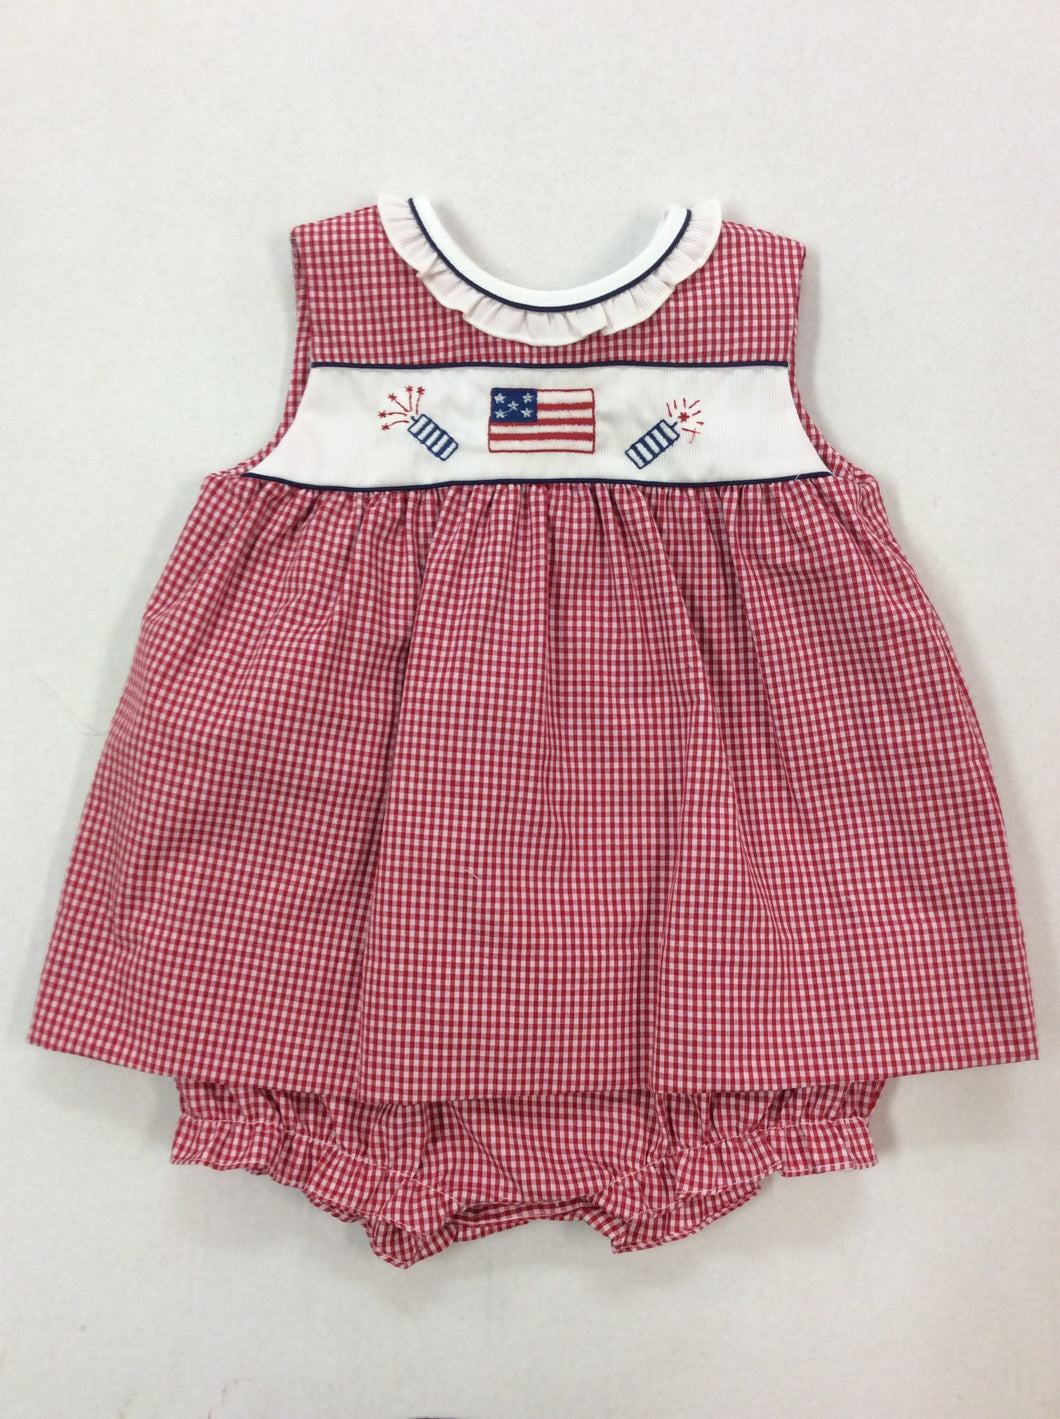 Bubble w/ Ruffled Collar & Flag & Fireworks